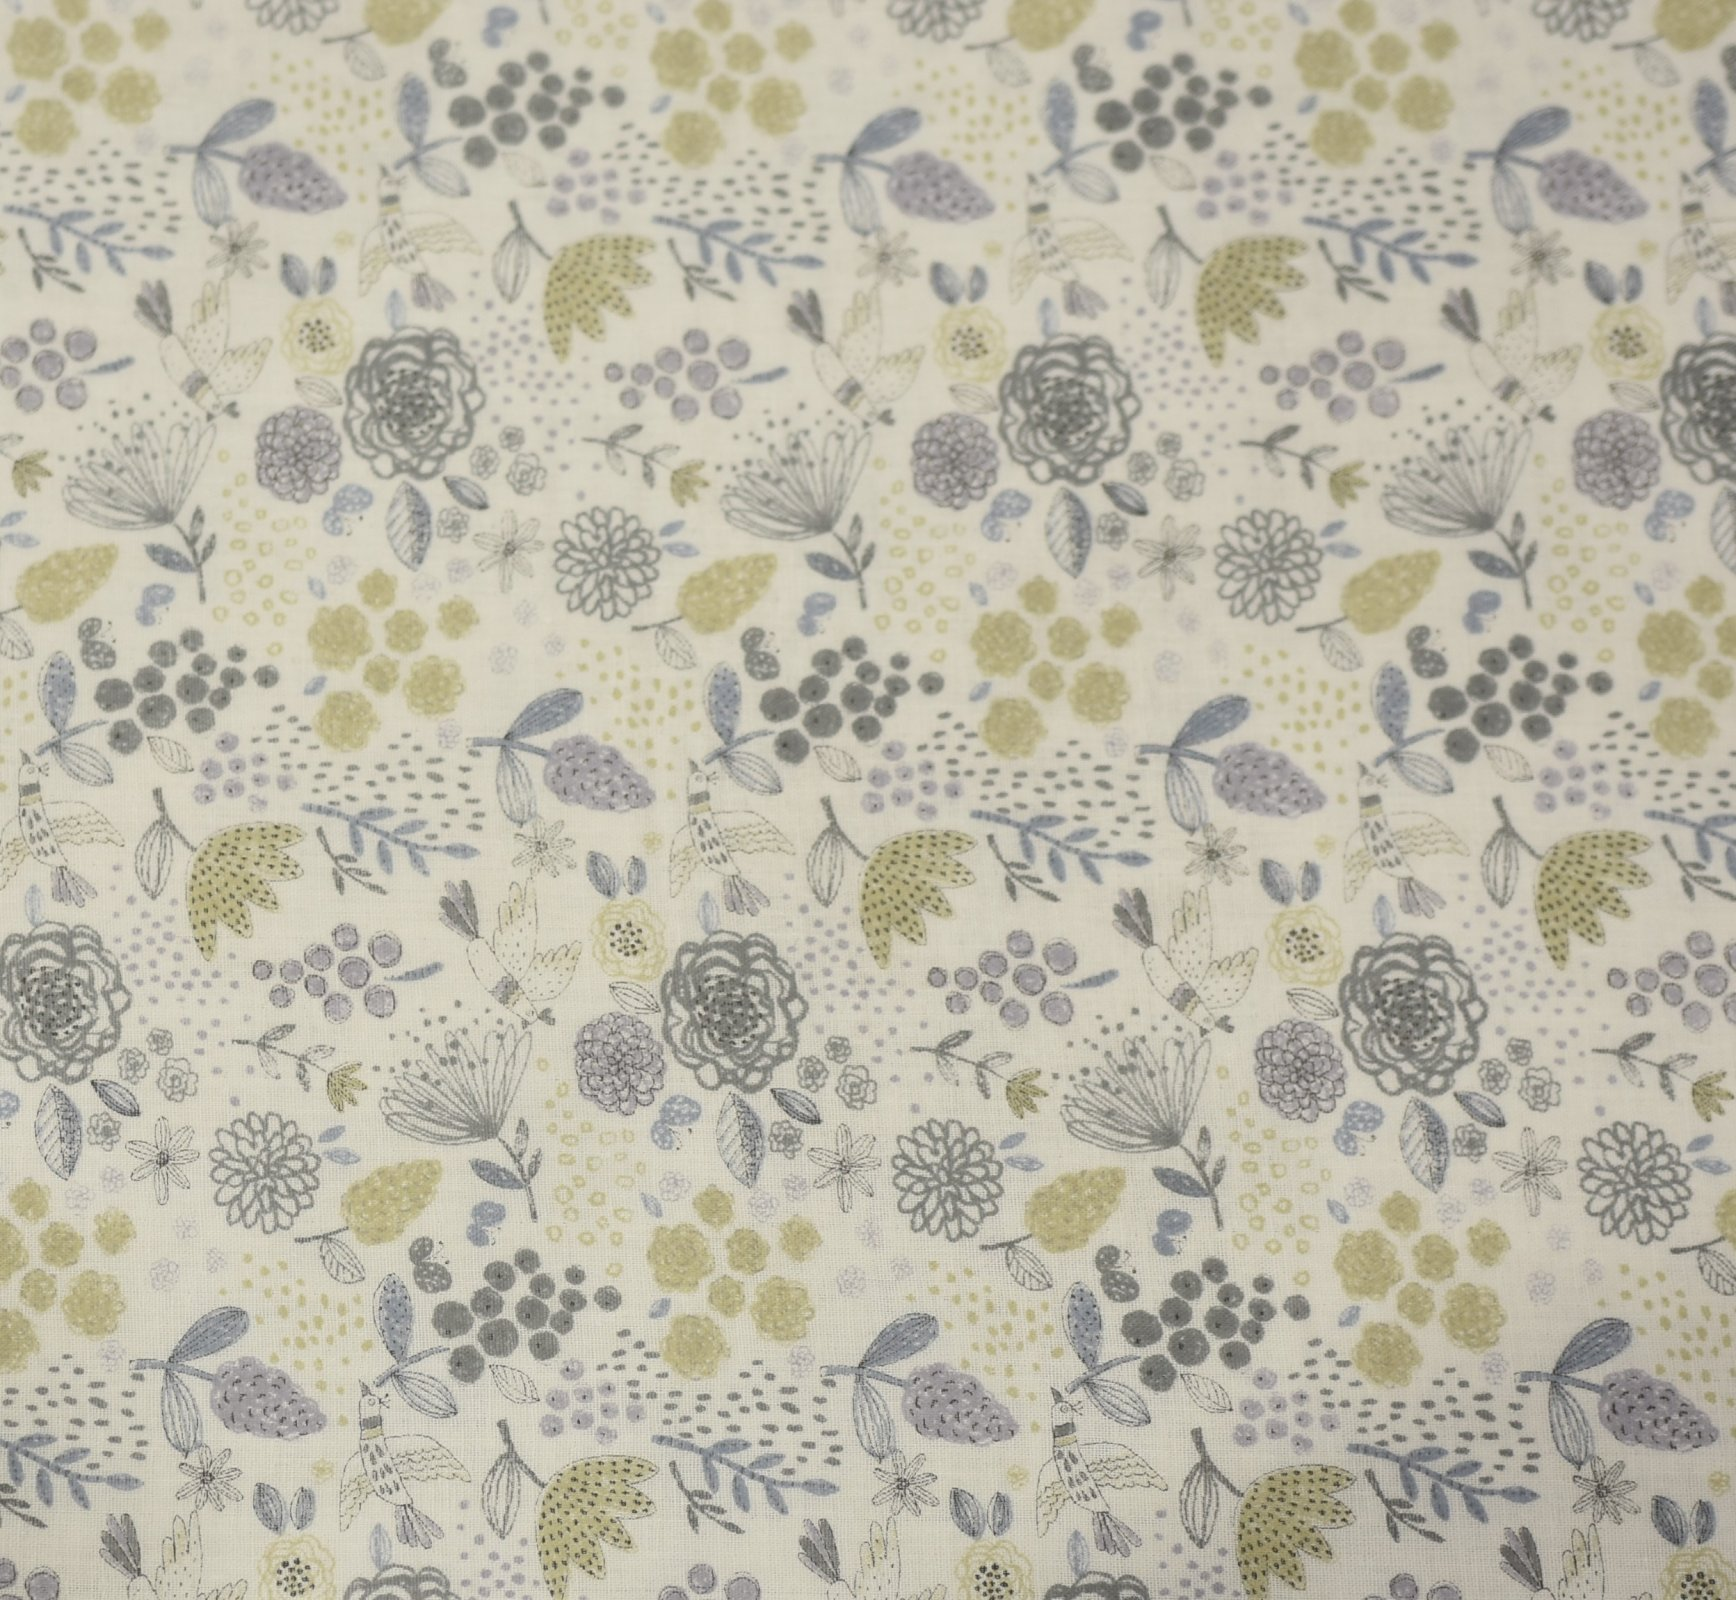 Japanese - Double Gauze - Soft Floral - Green Grey